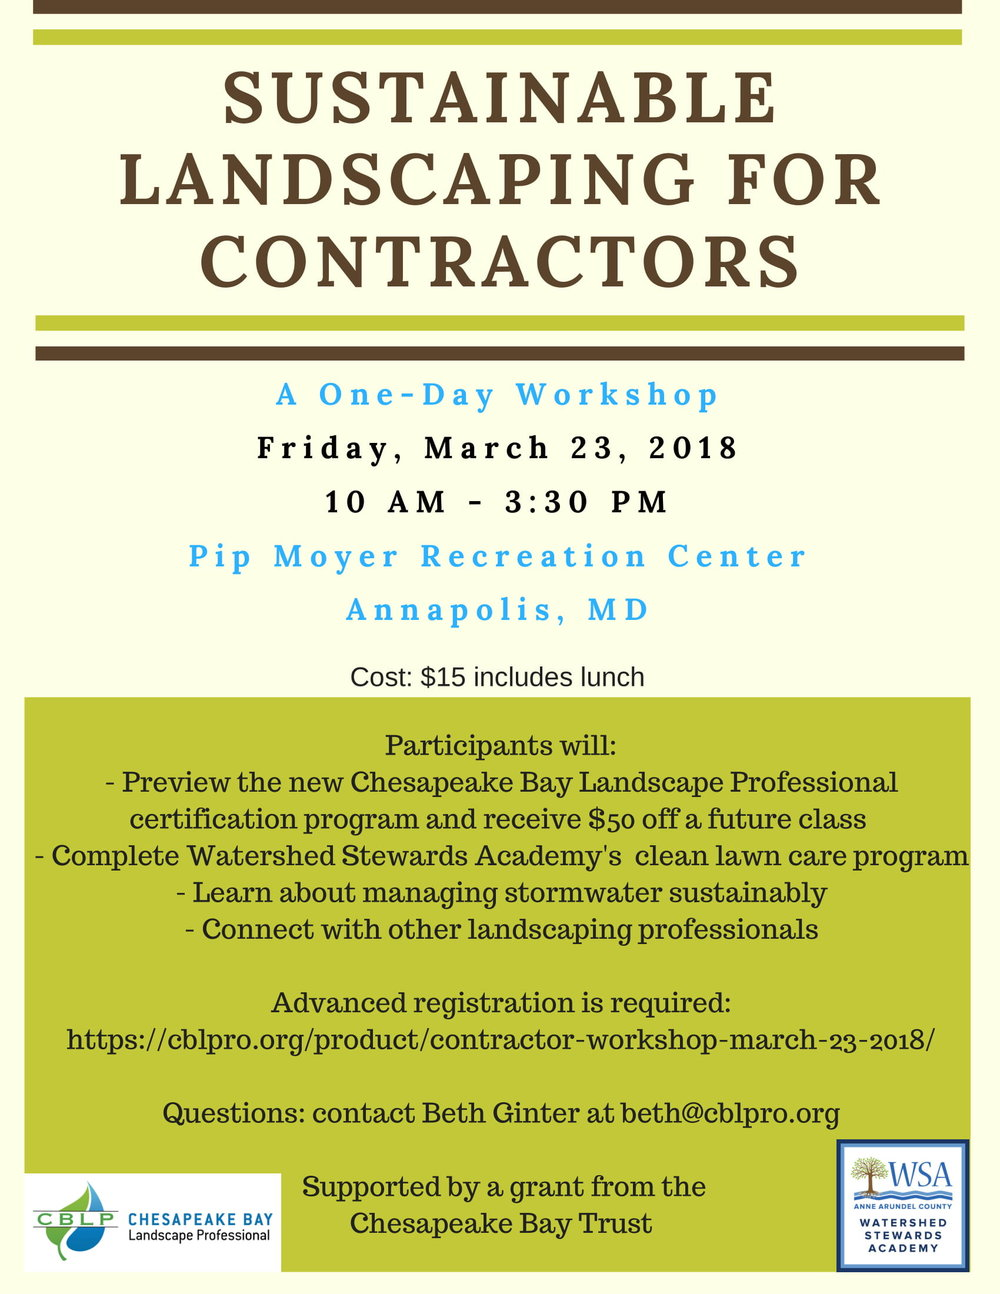 March 23 CBLP Contractor Workshop Flyer-1.jpg